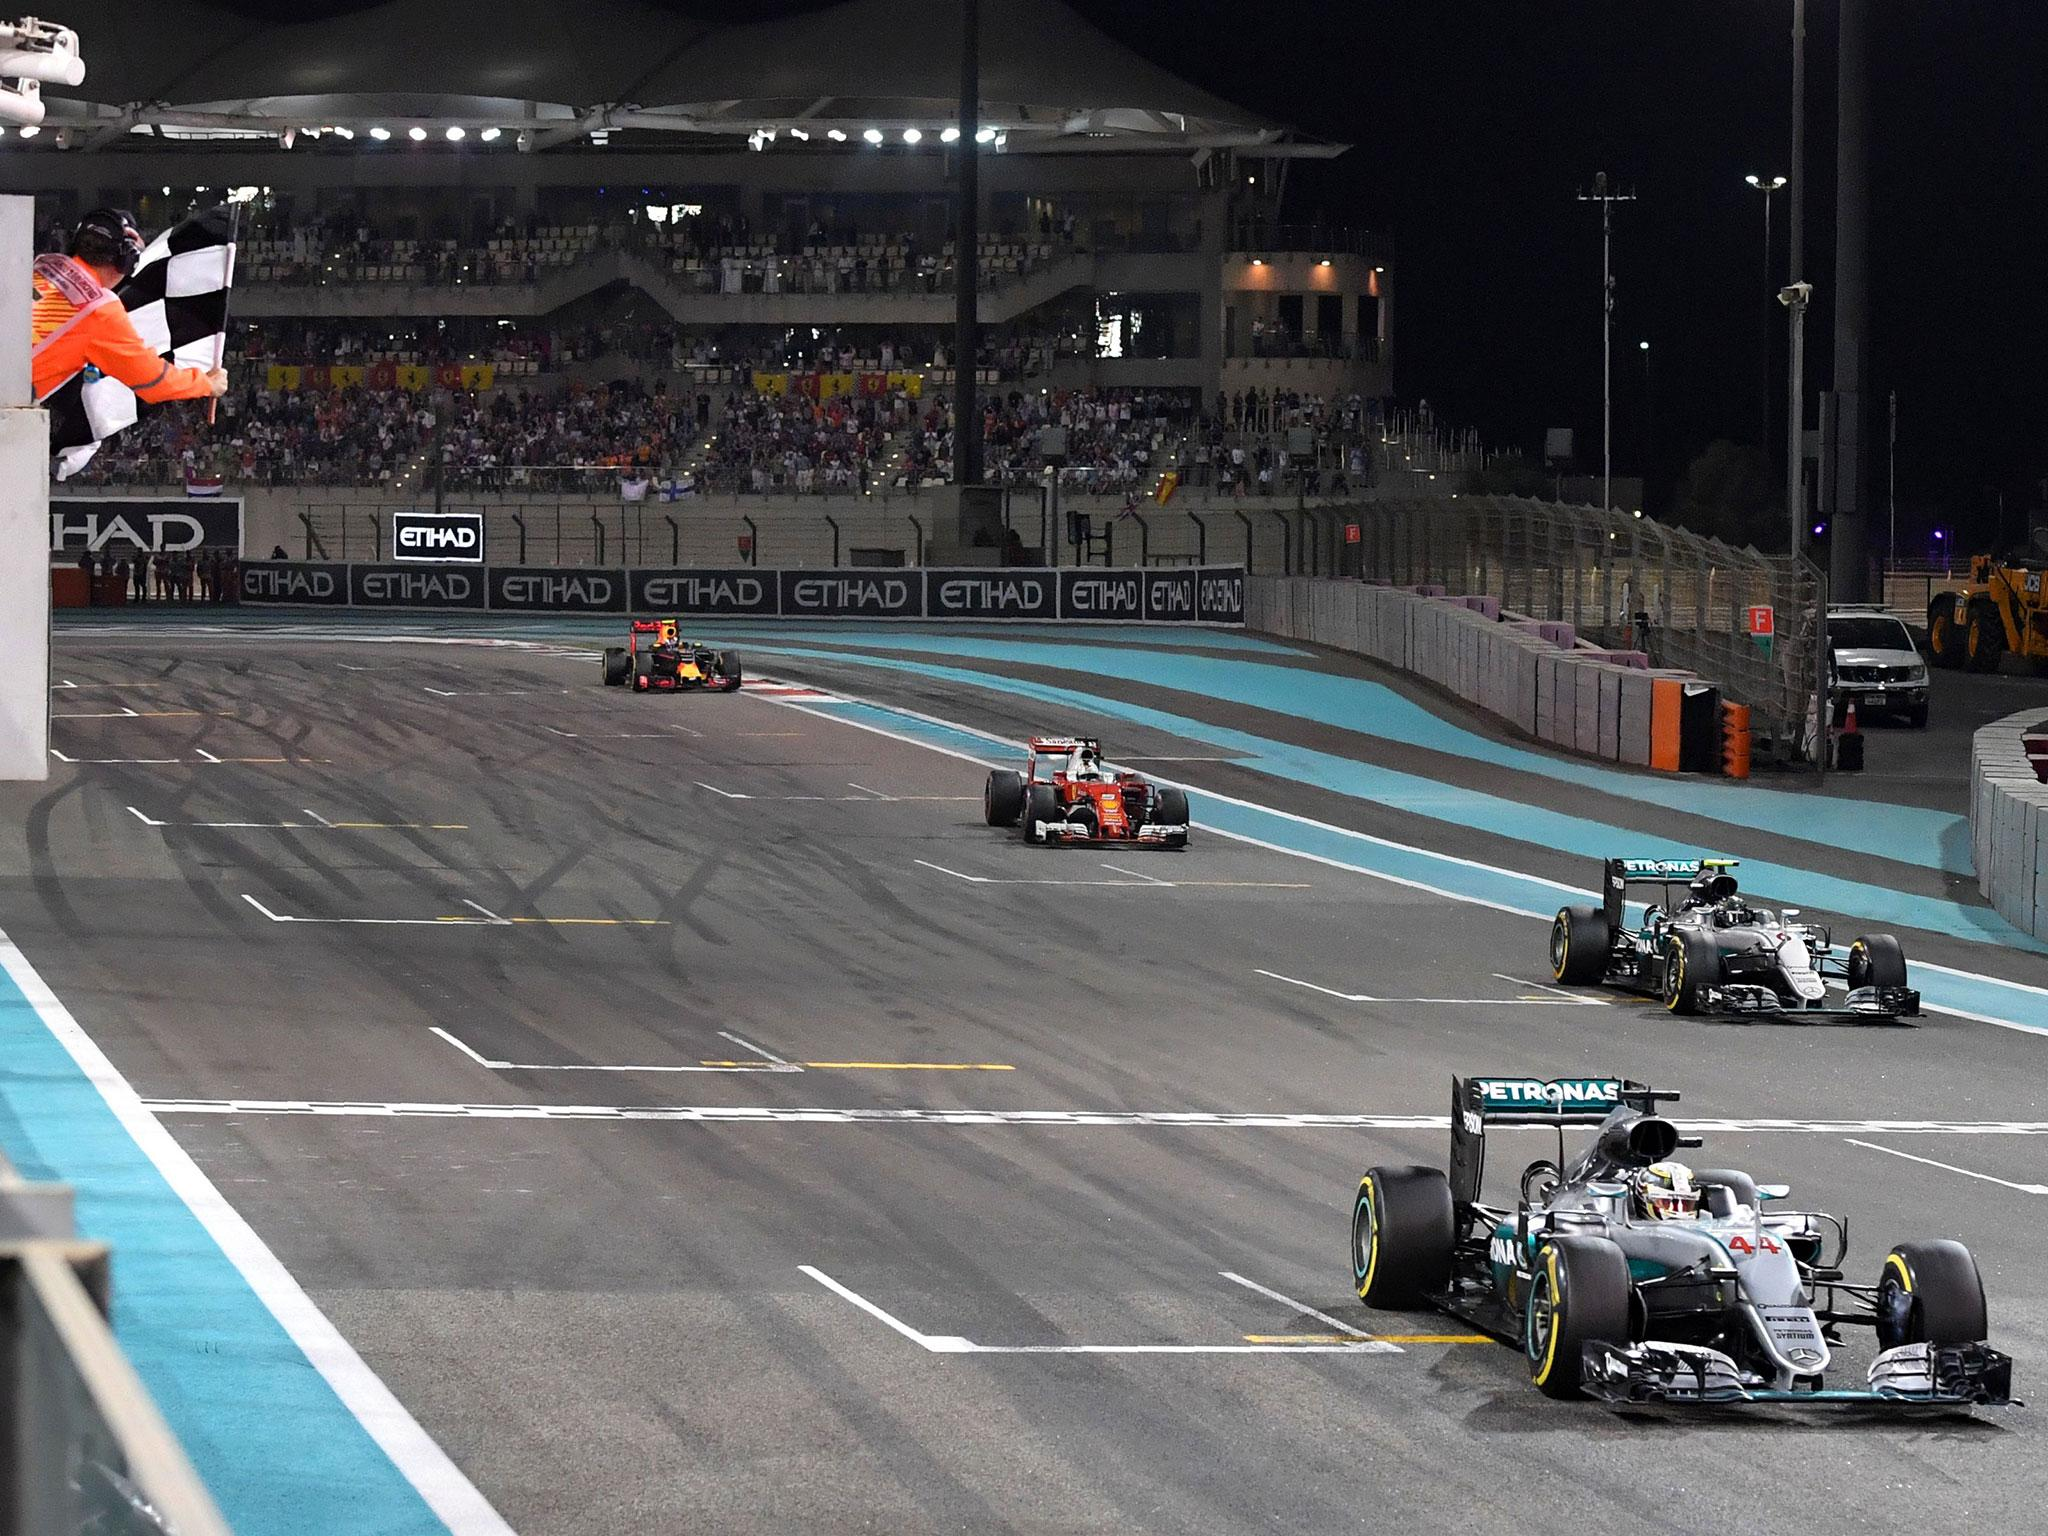 abu dhabi grand prix live nico rosberg wins championship as lewis hamilton holds on to grand. Black Bedroom Furniture Sets. Home Design Ideas